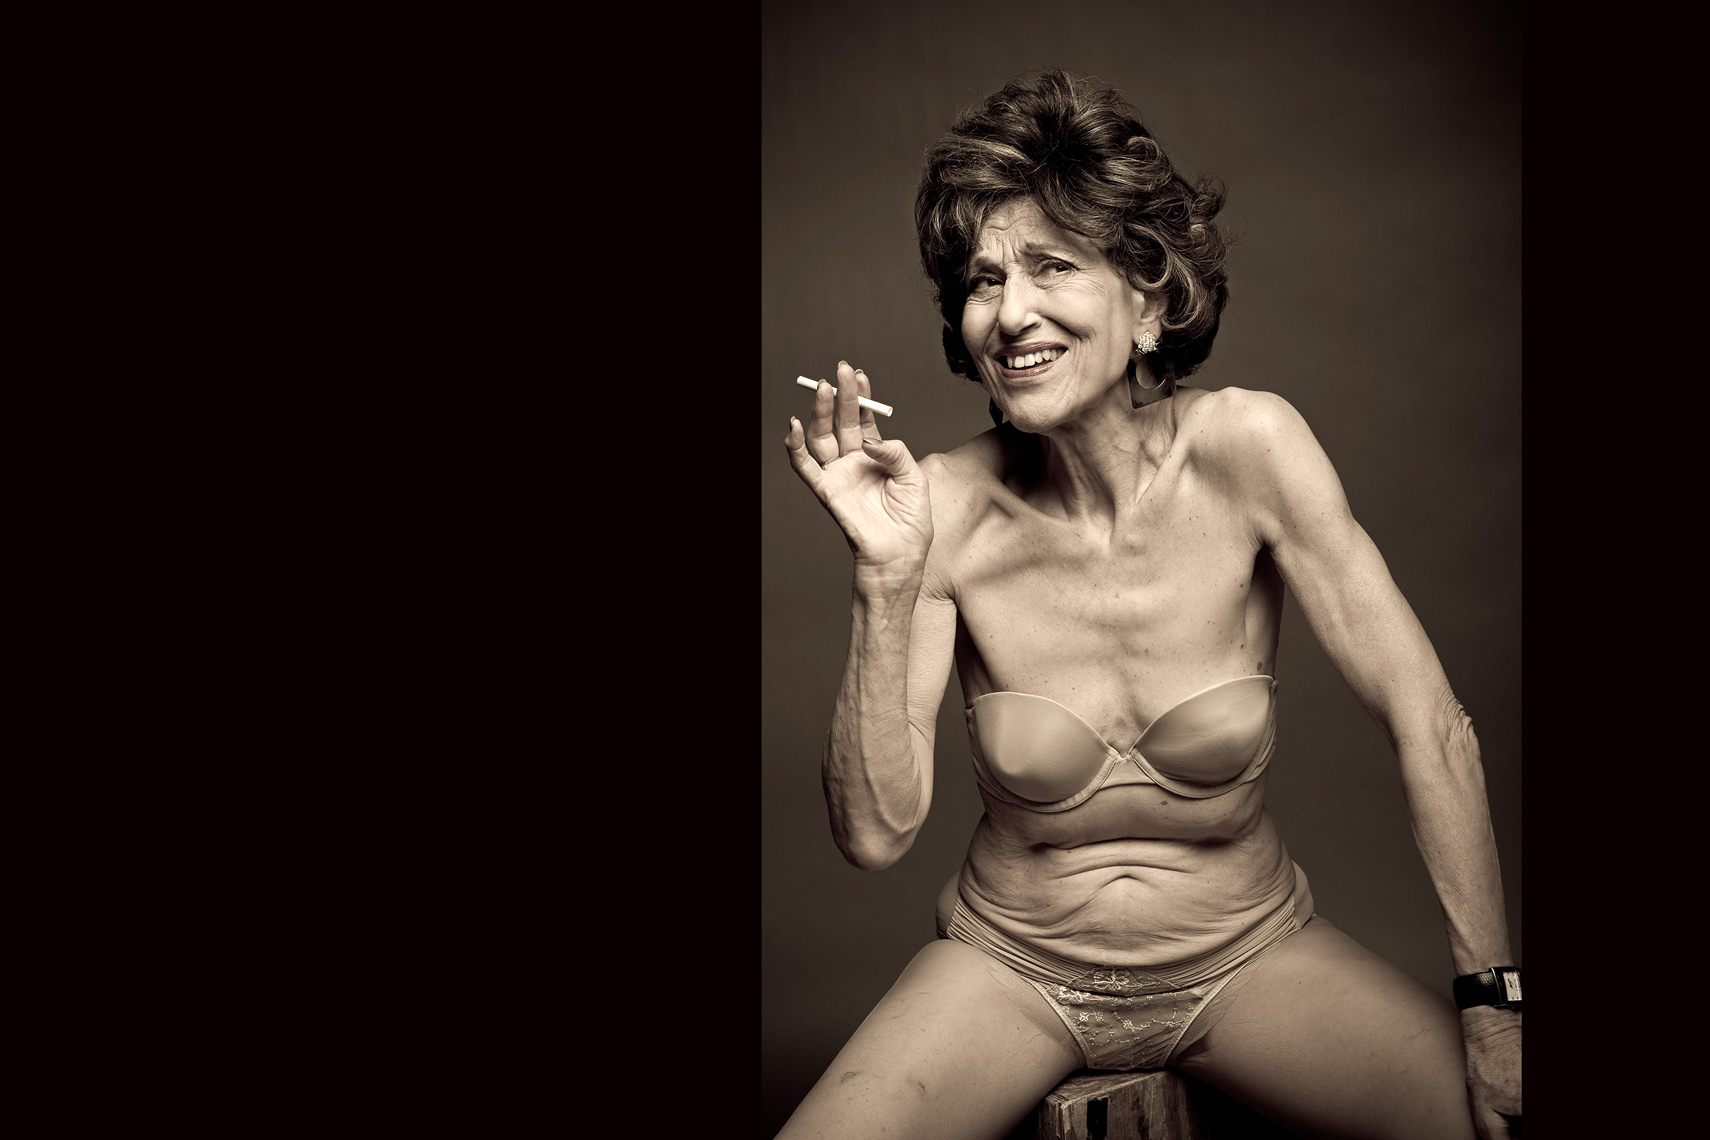 Los Angeles Portrait Photography, Michael Brian, pet, cat, 75 year old semi-nude woman, lingerie, cigarette, studio beauty portrait